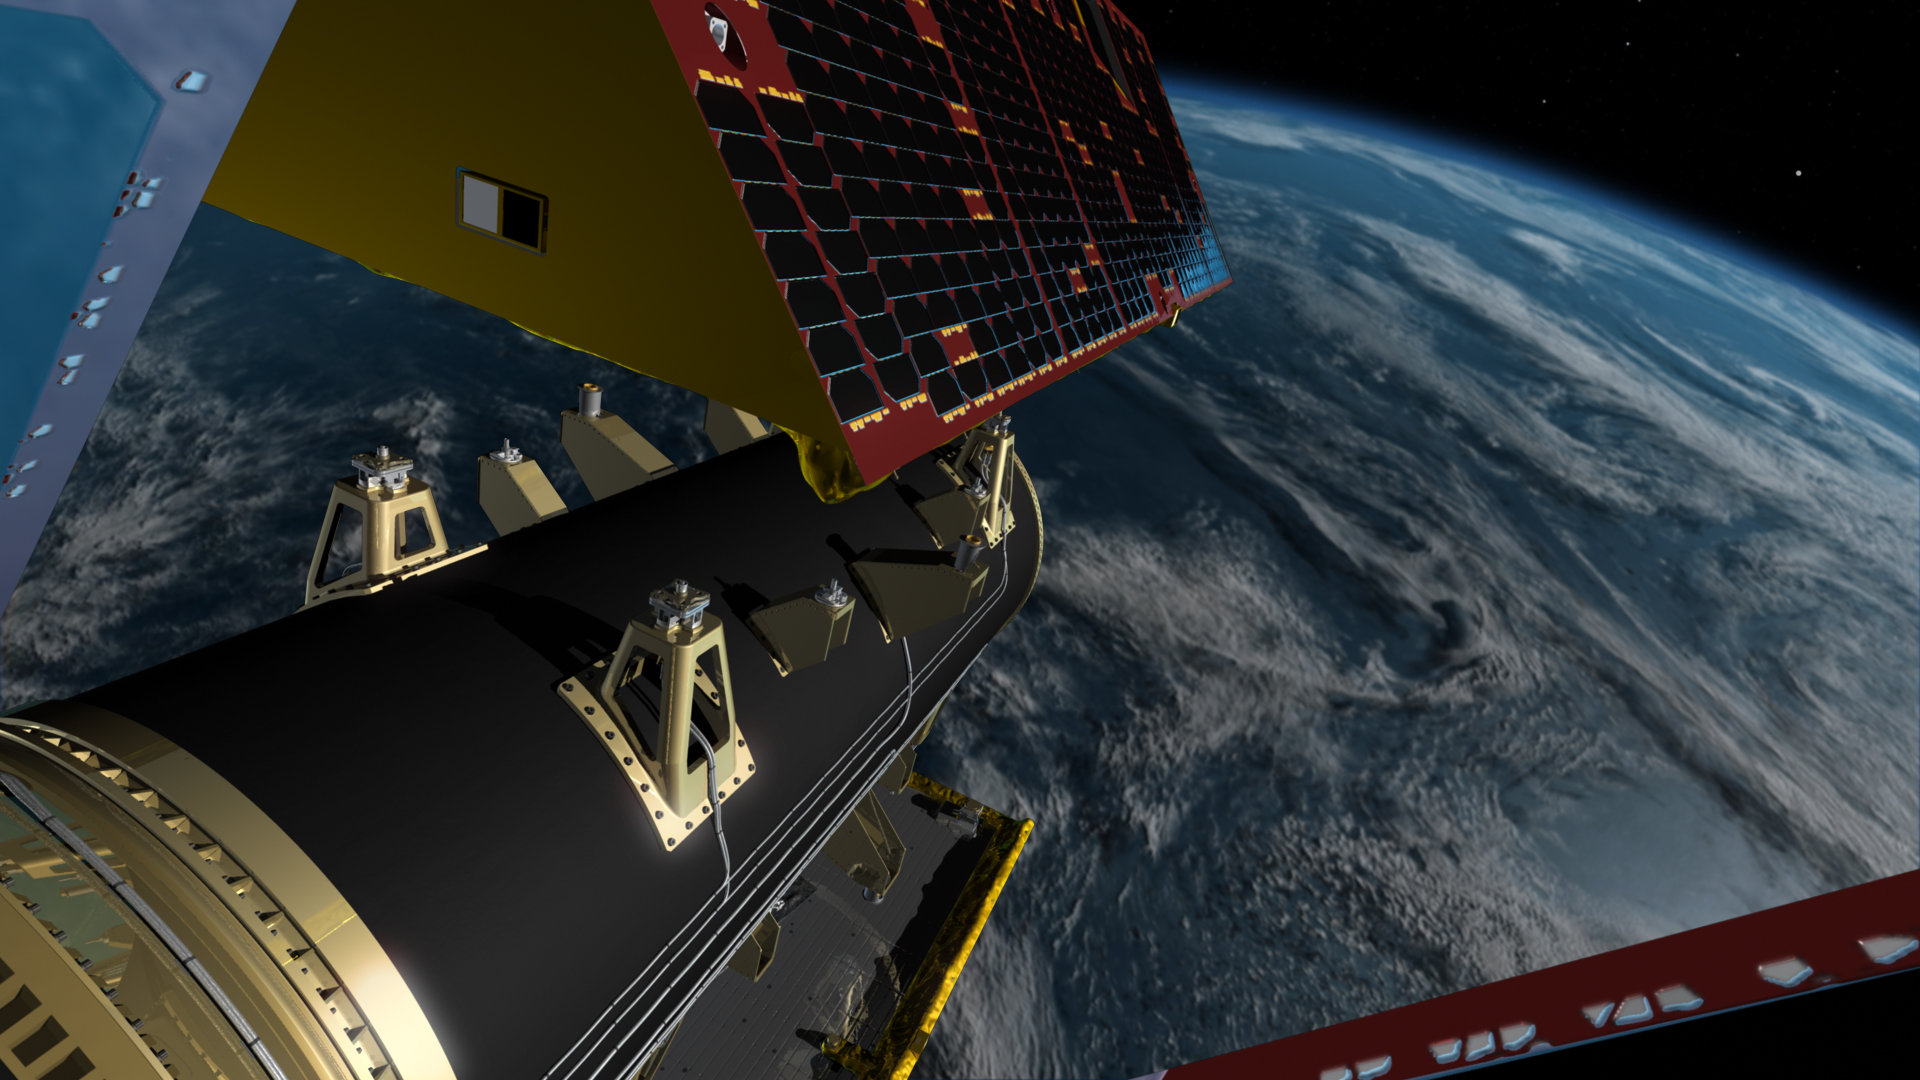 One of the GRACE-FO satellites separates from a spacecraft dispenser over Earth